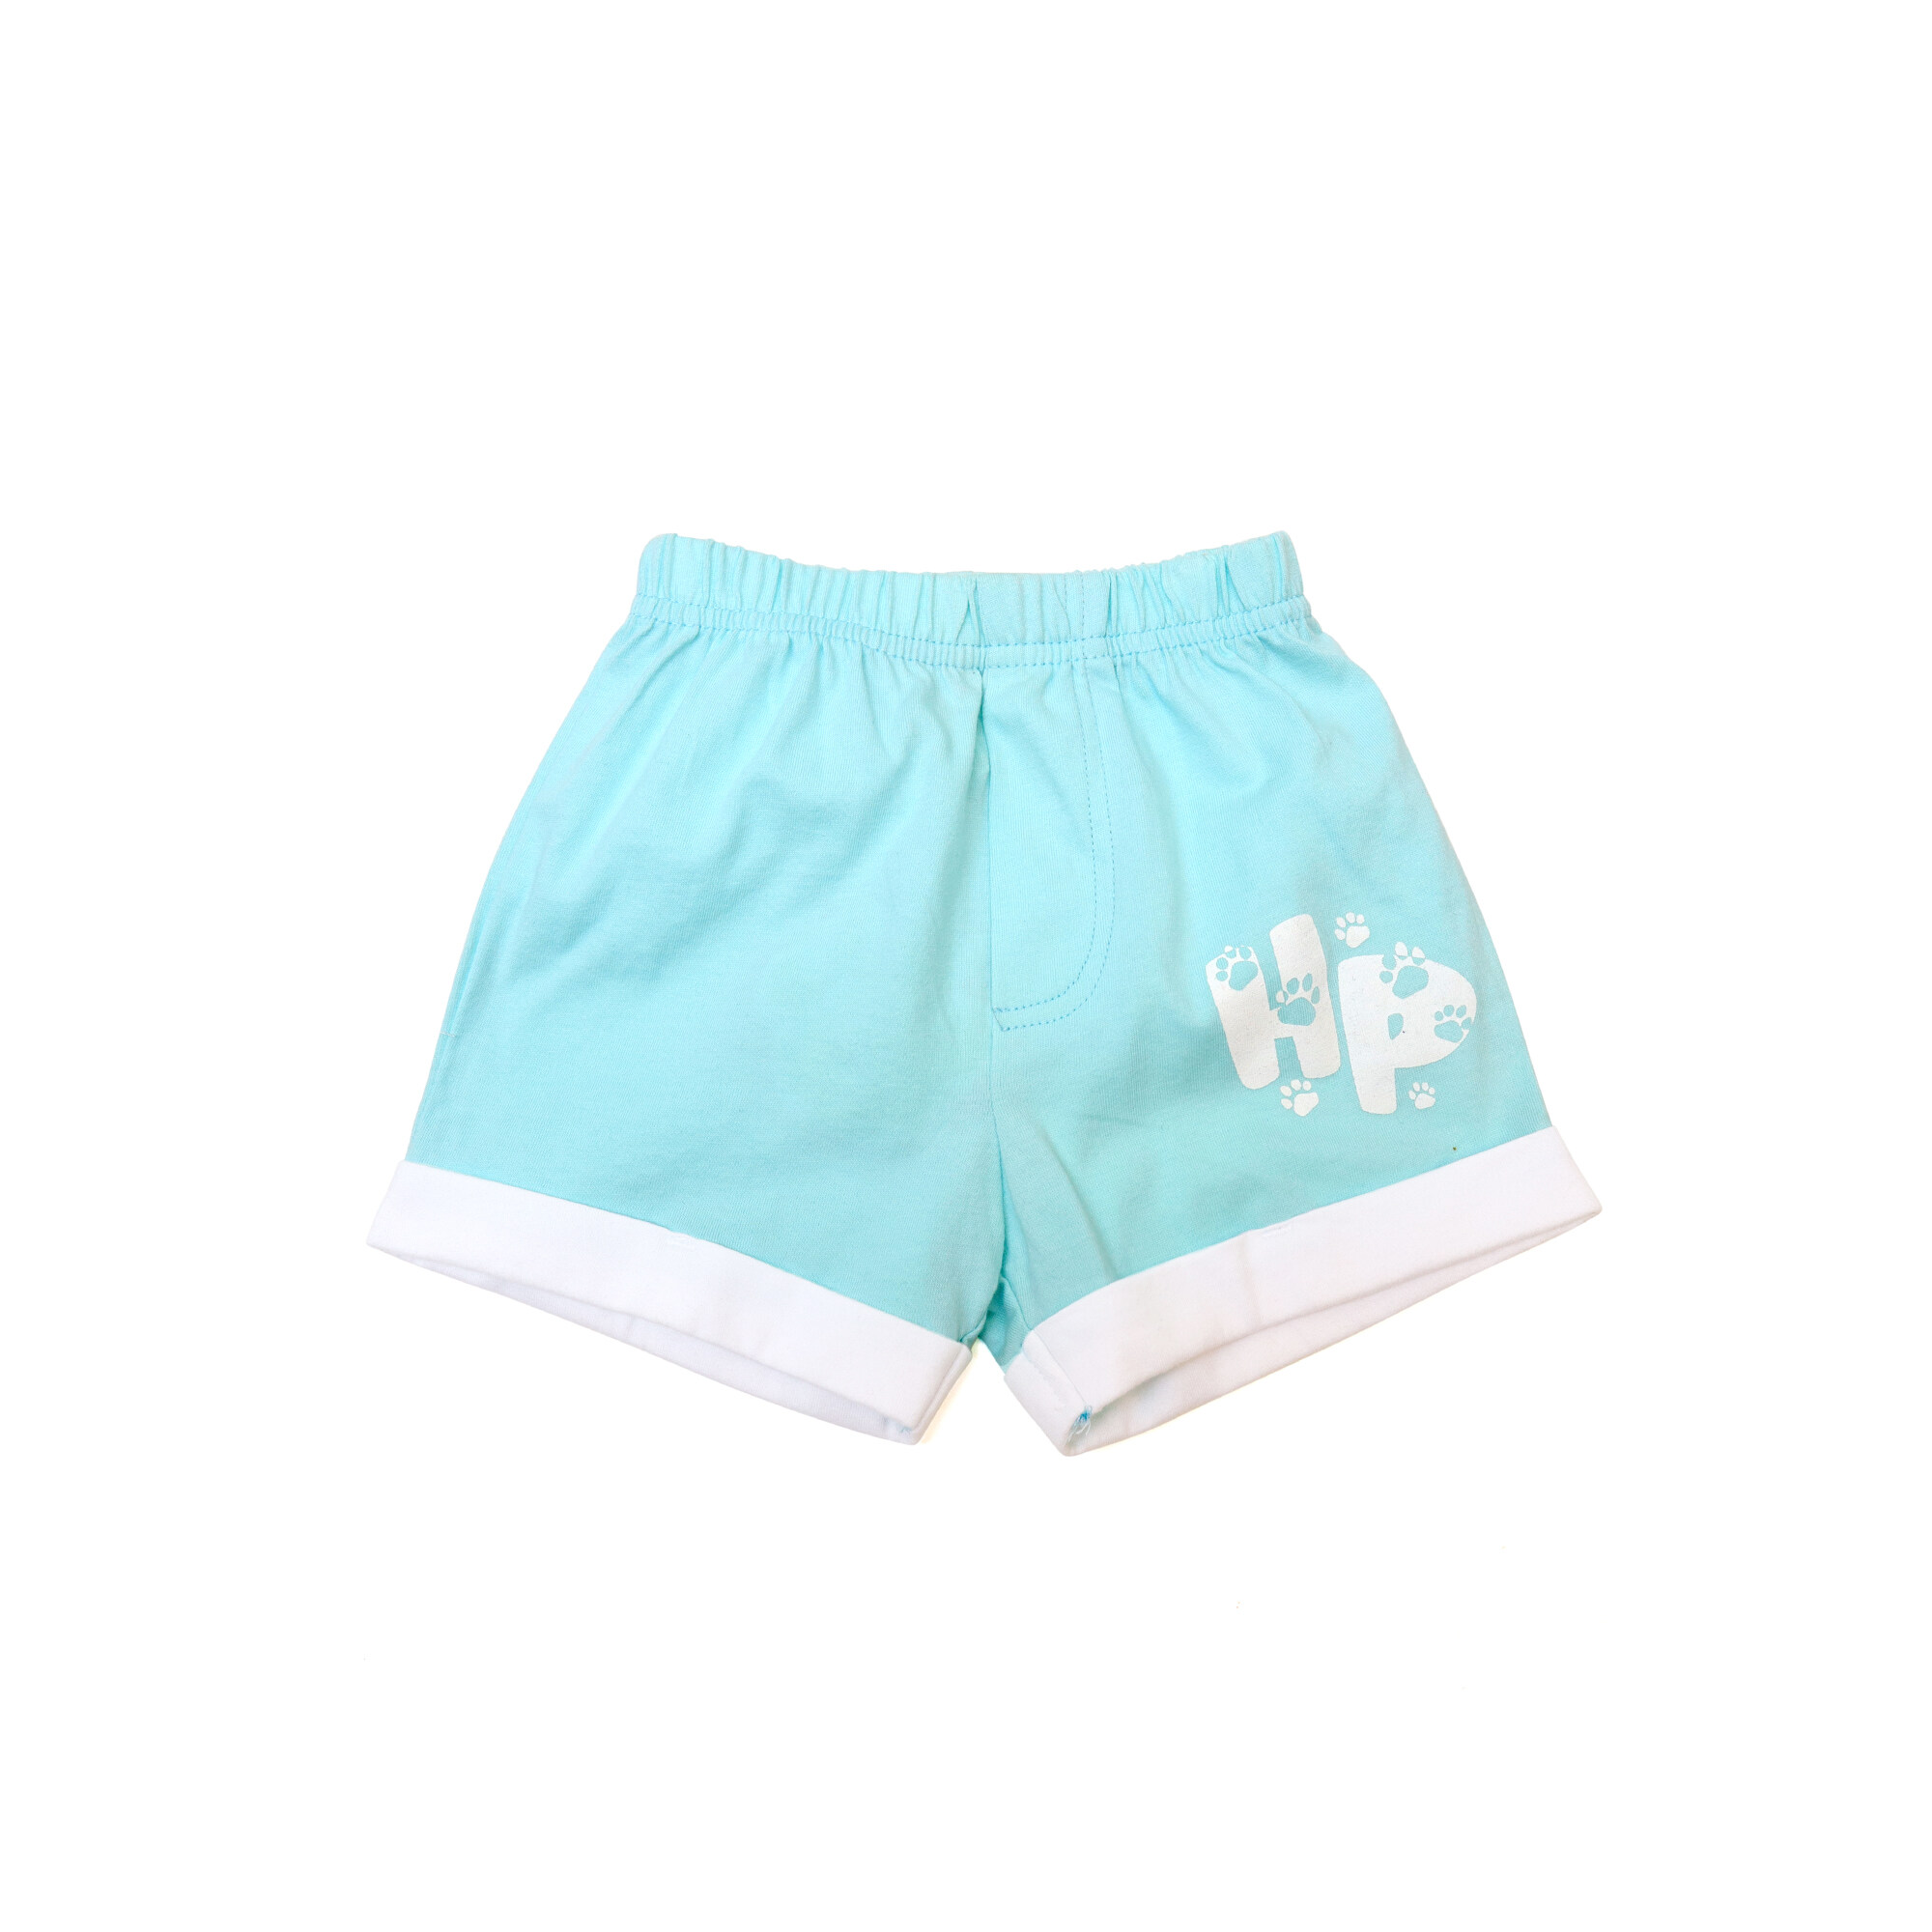 Hush Puppies Akanksh Baby Boys Knit Short  HEM732656